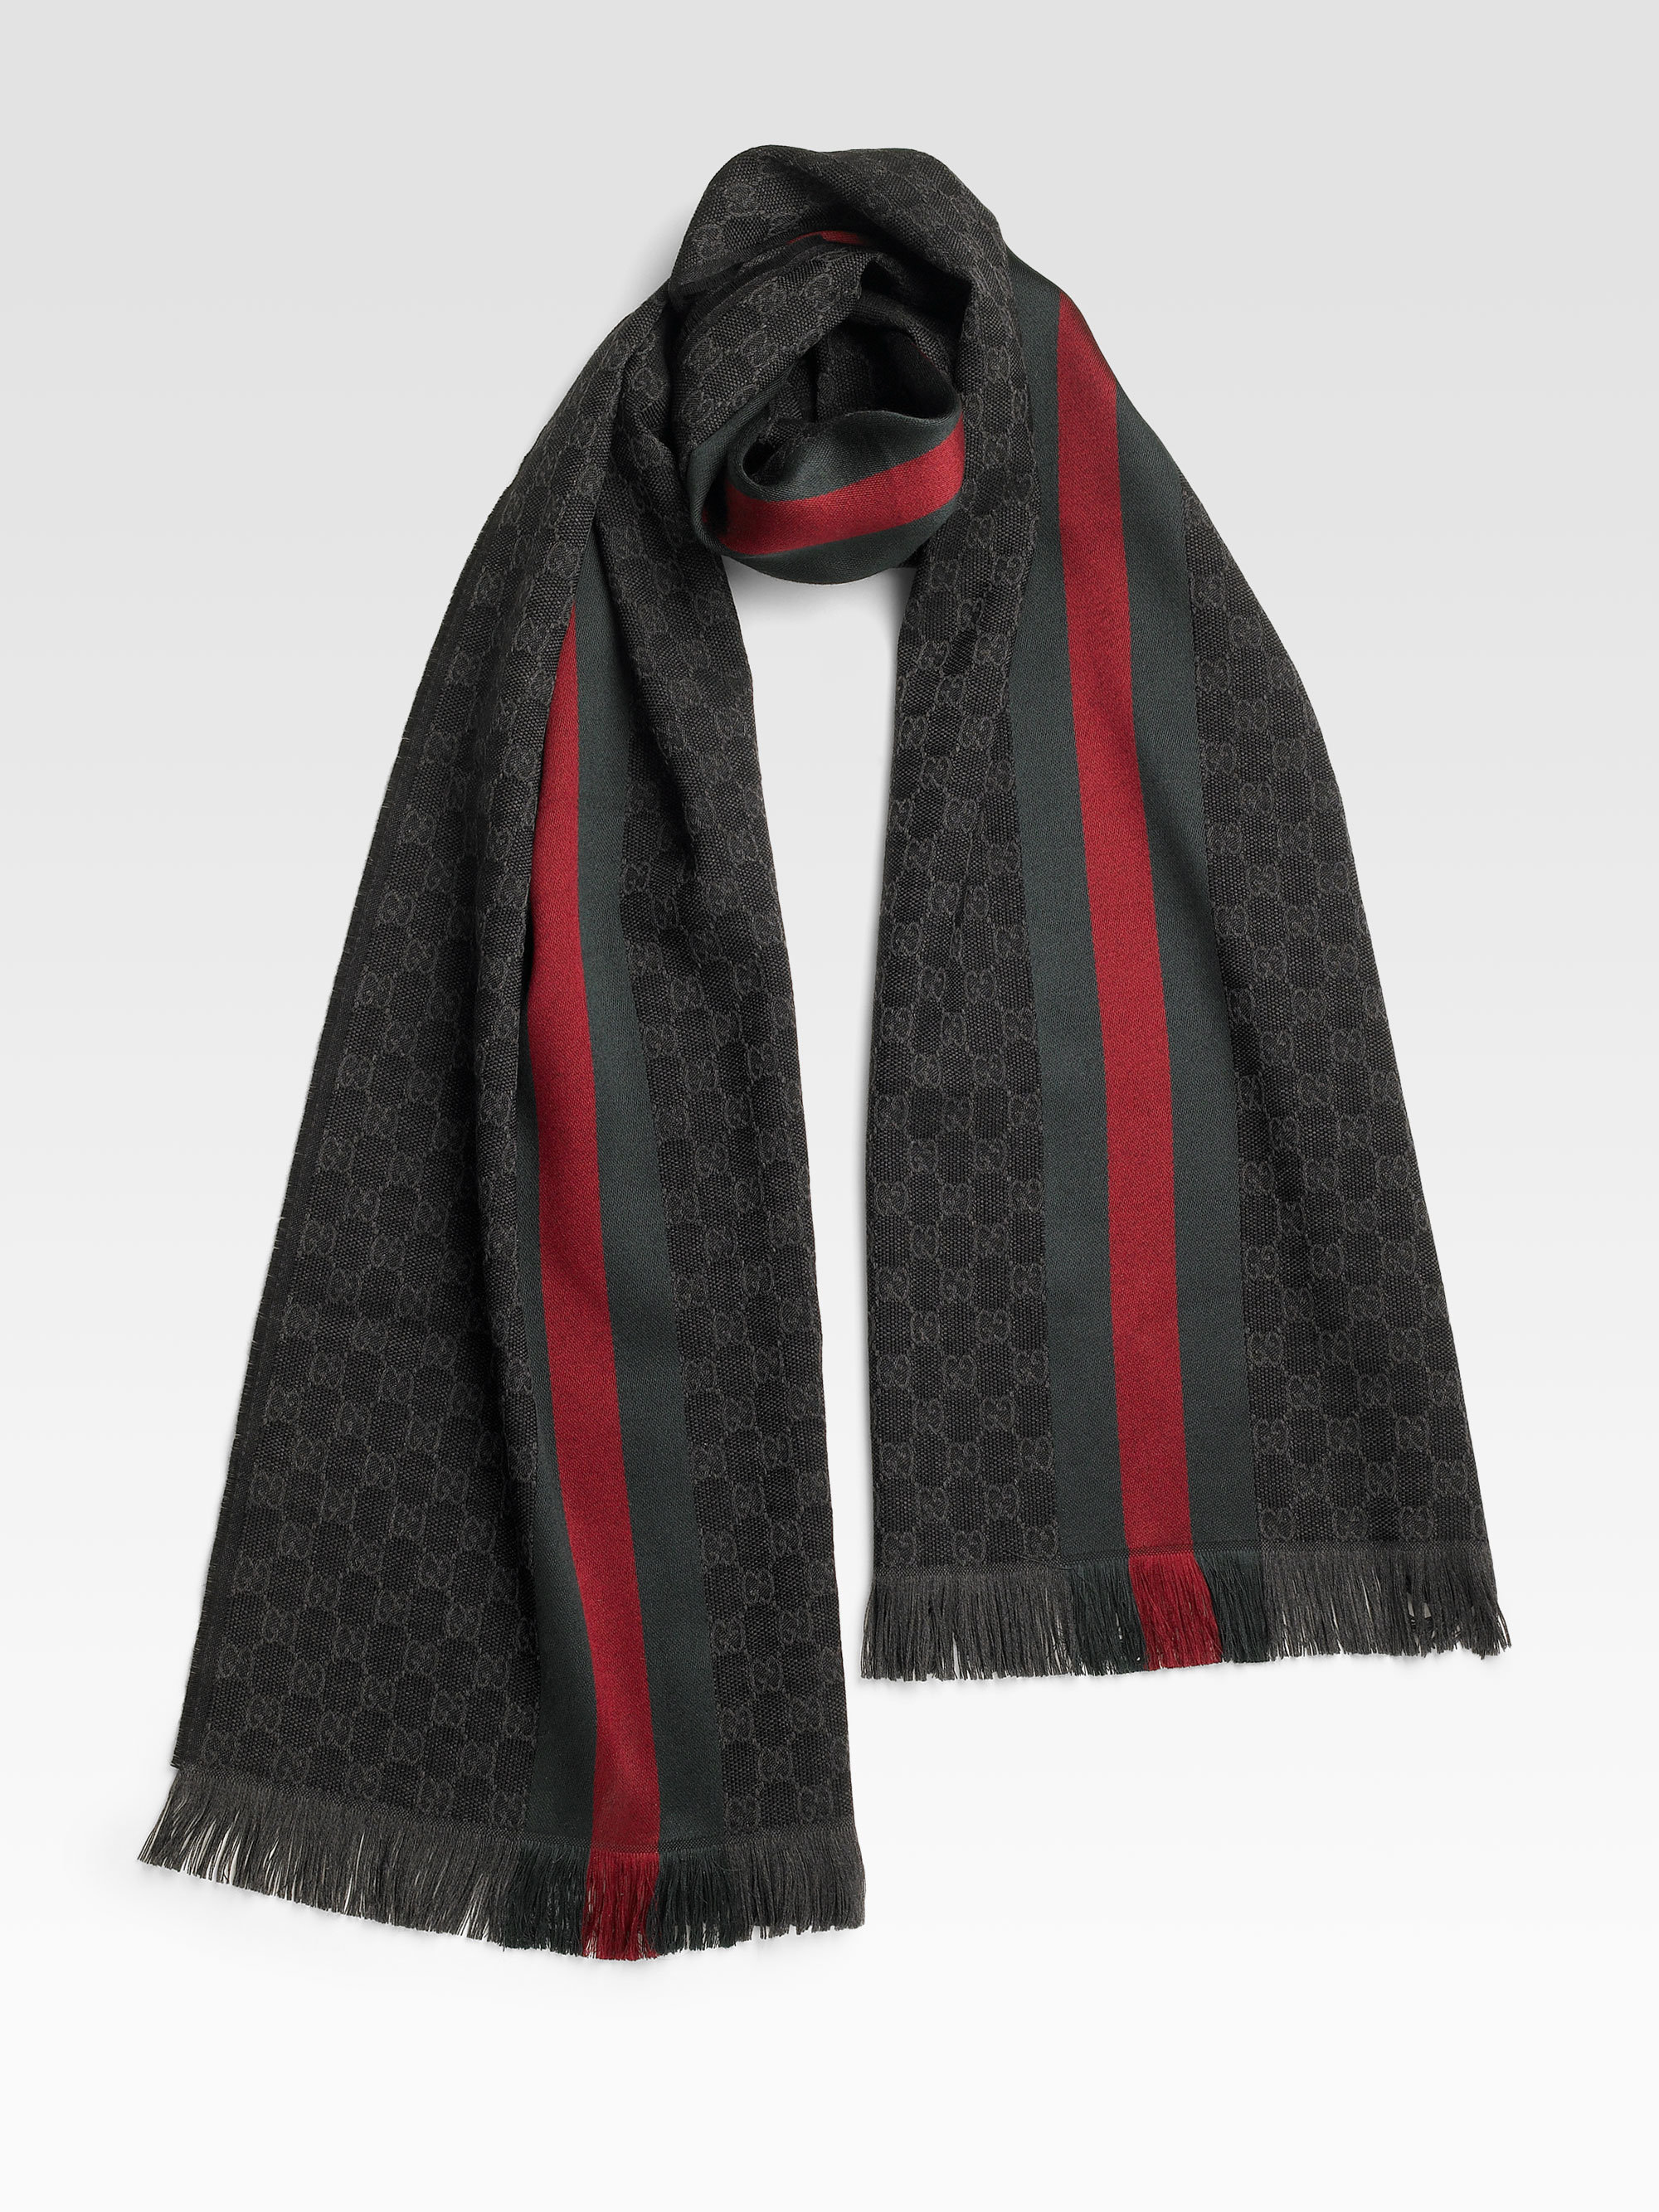 Lyst Gucci Gg Jacquard Knit Scarf In Green For Men